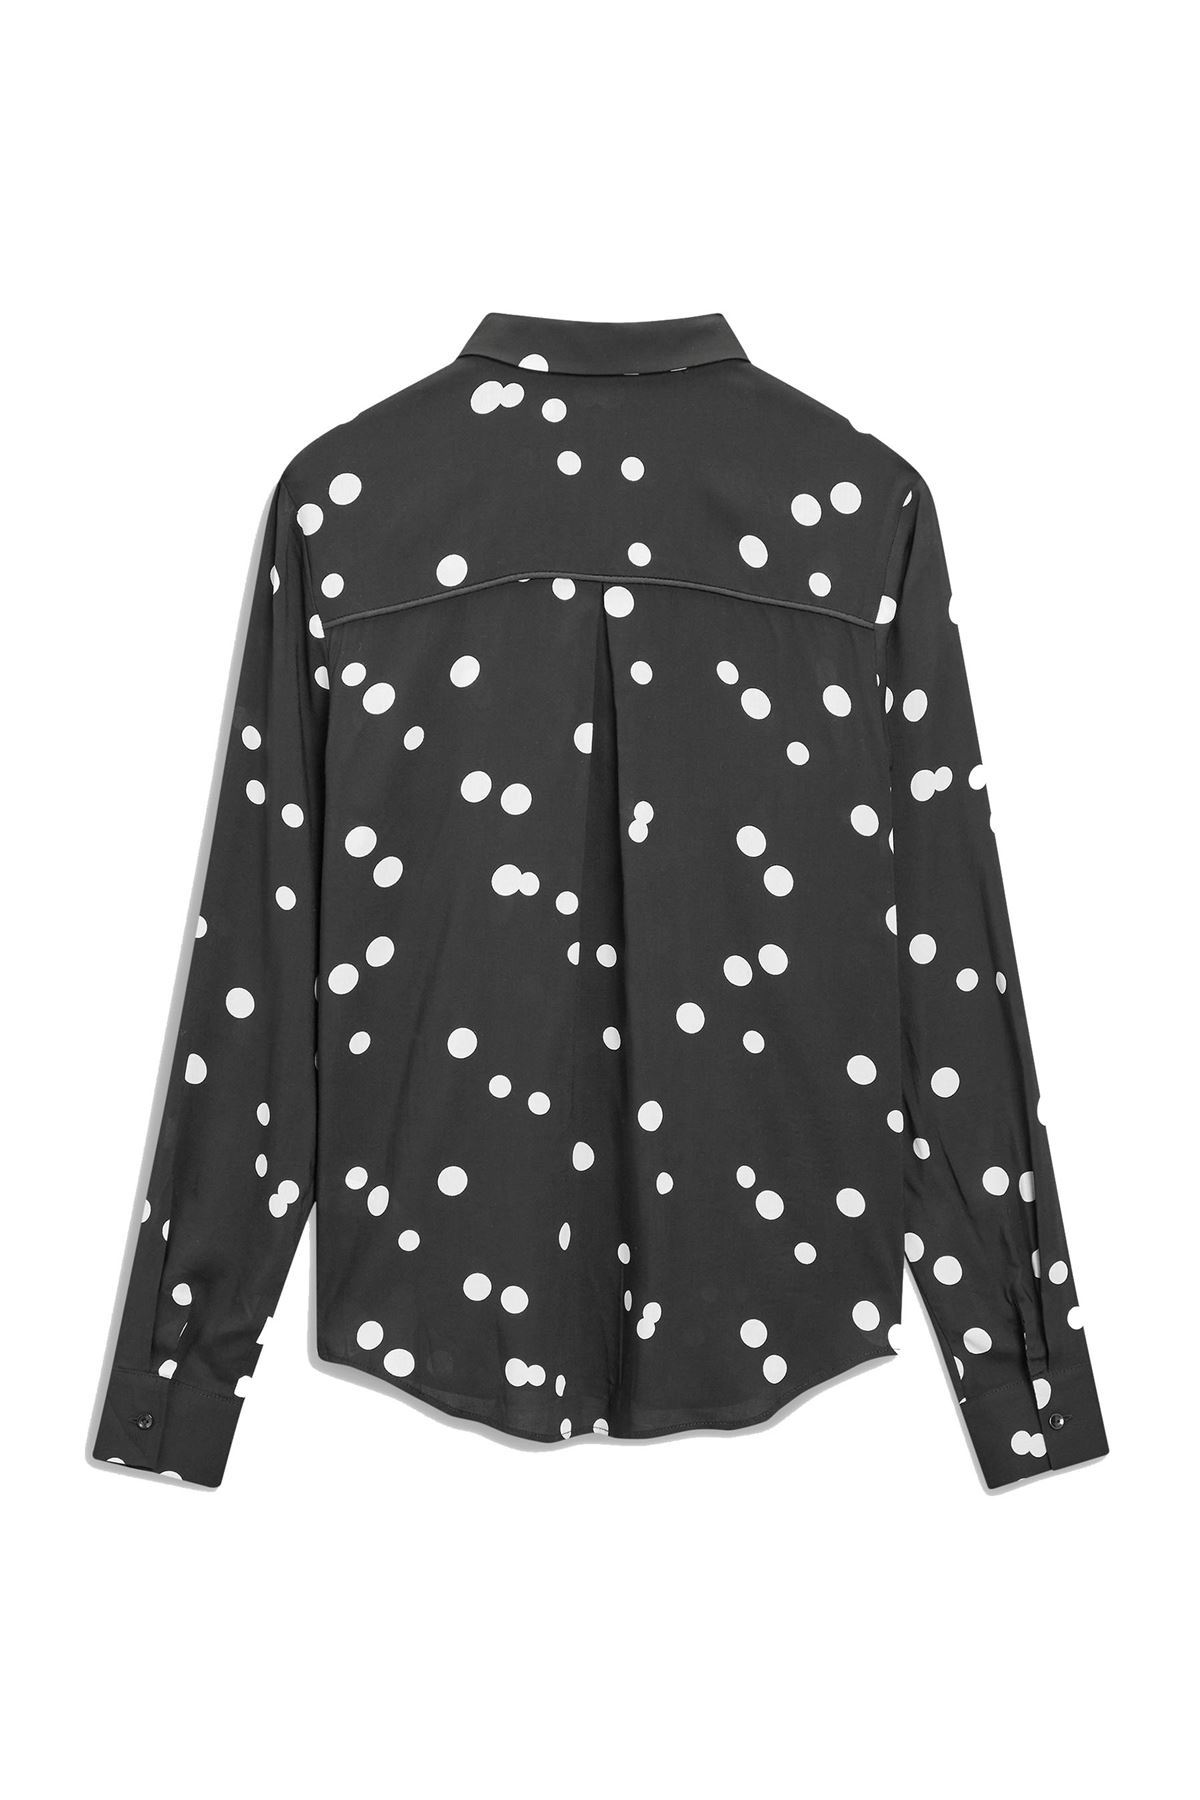 NEXT-Black-White-Spotted-Long-Sleeve-Silky-Shirt-Blouse-SALE-Was-24 thumbnail 10